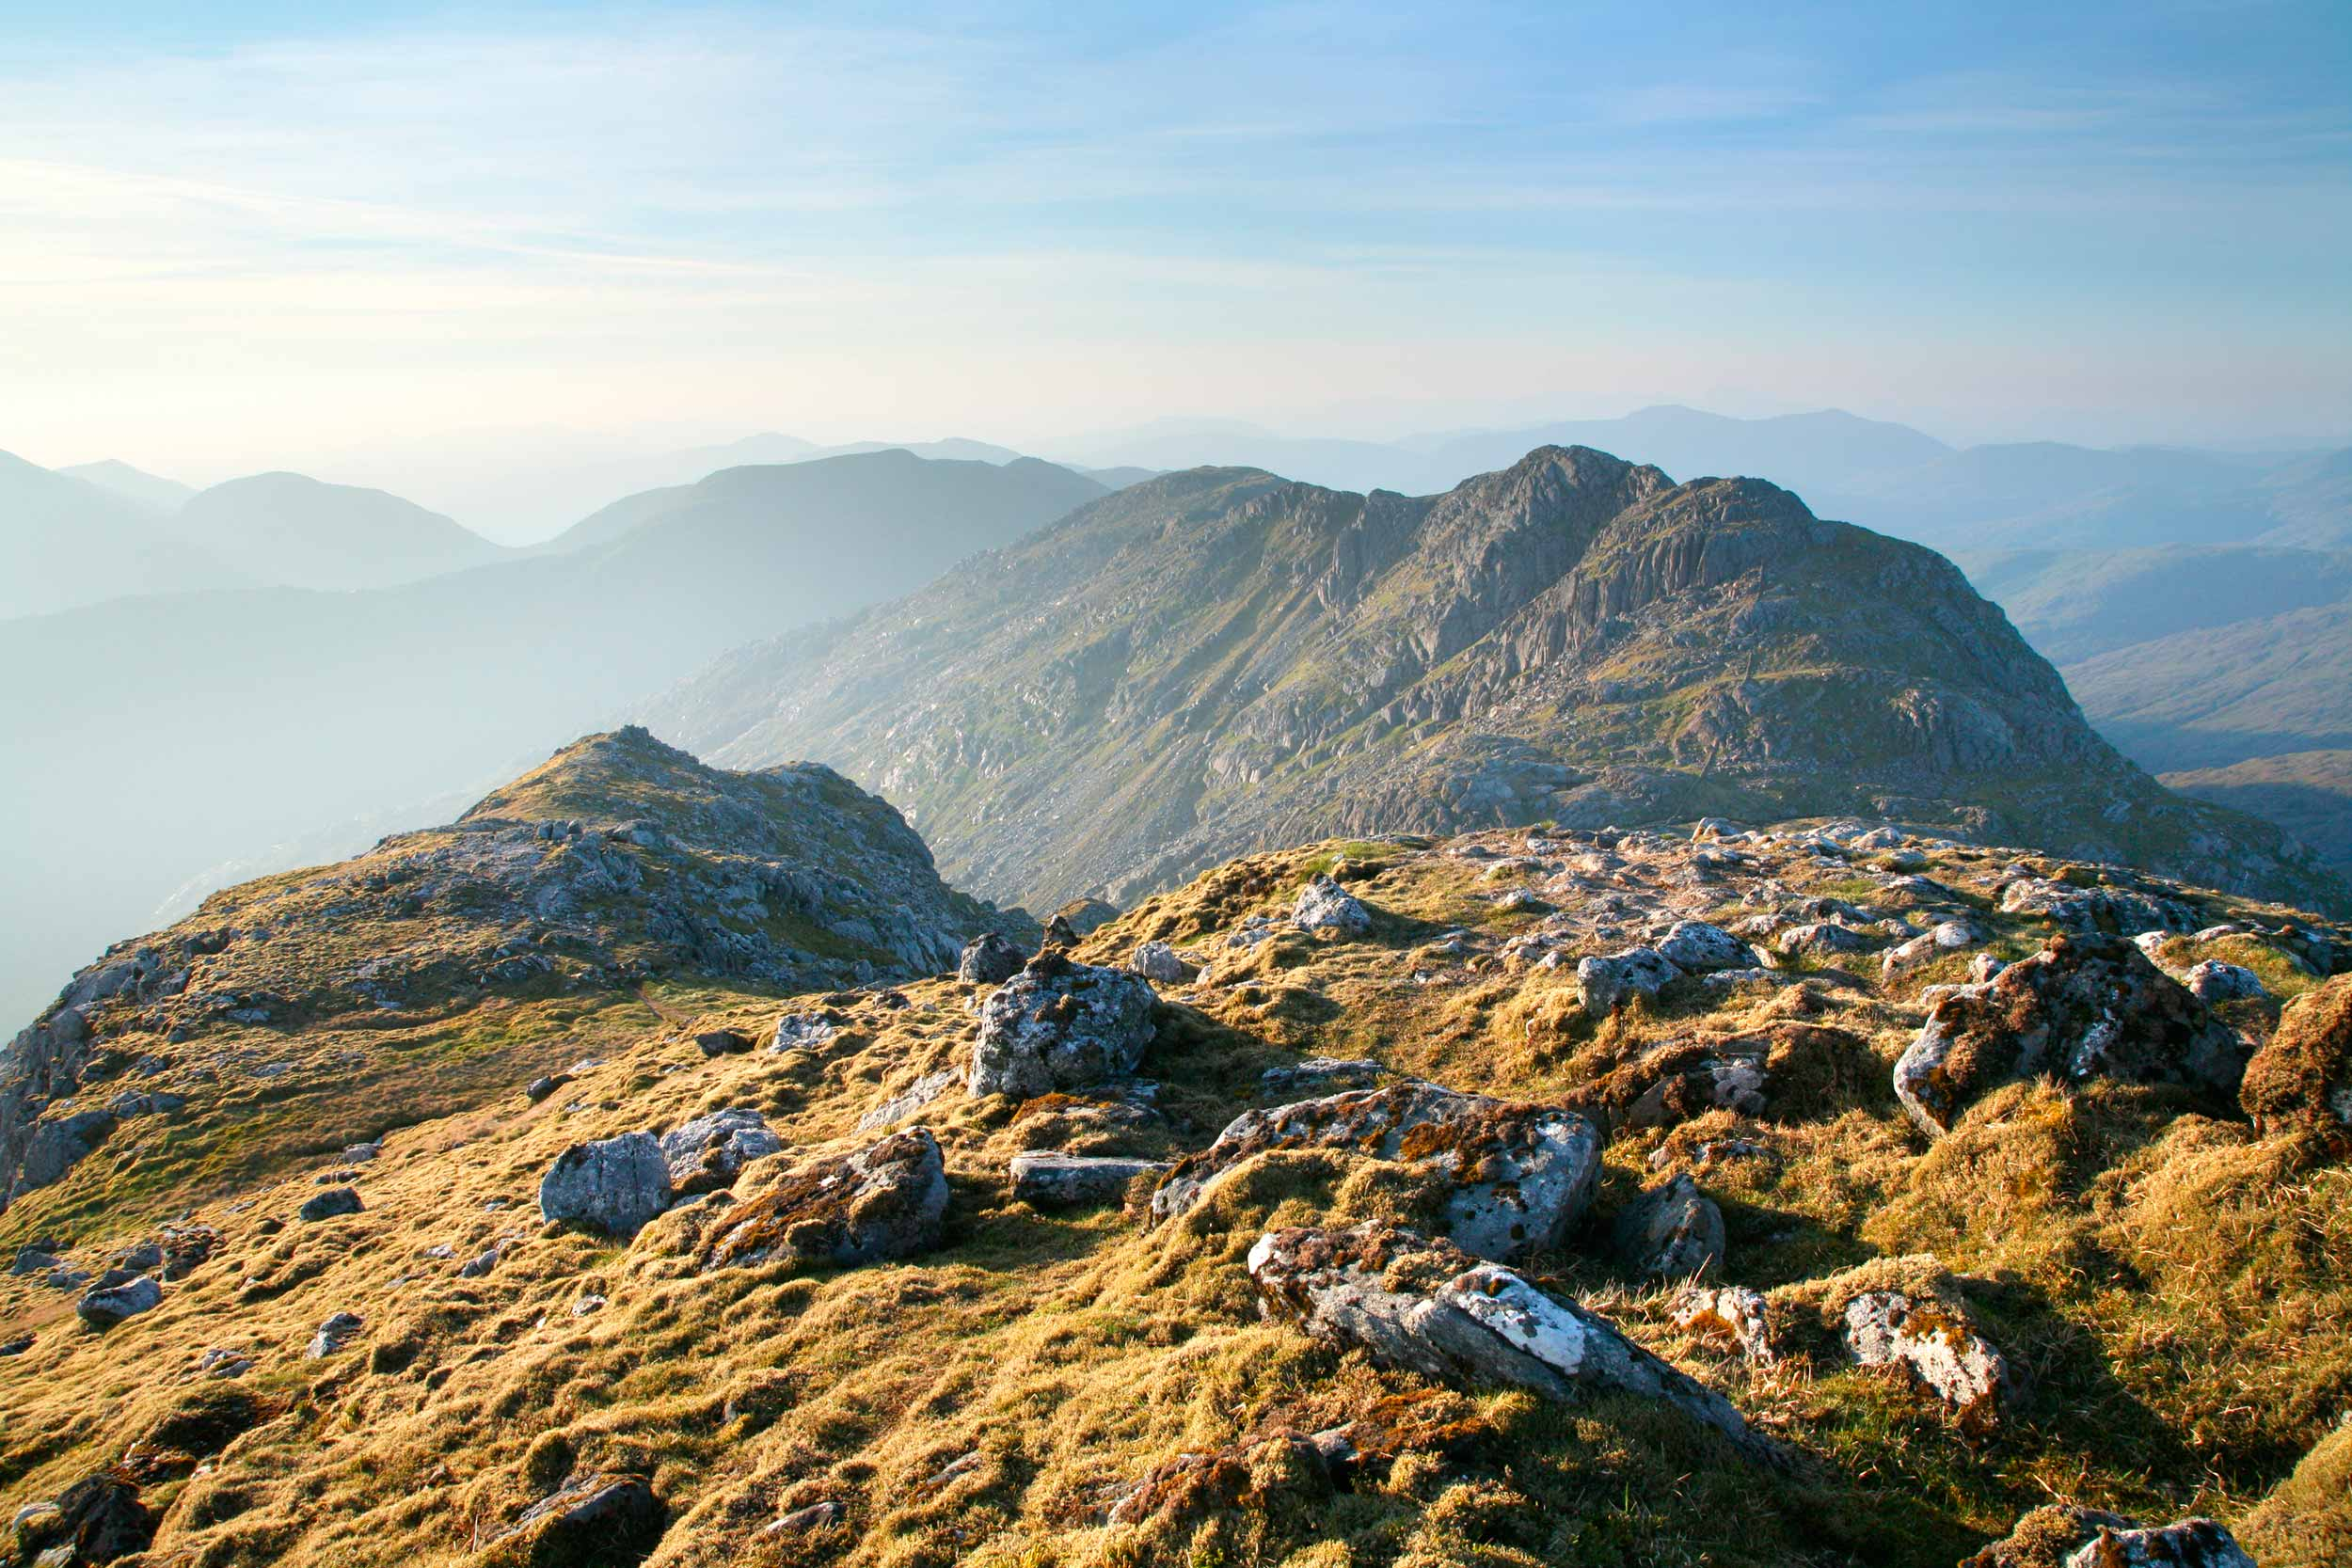 Knoydart is one of the remotest parts of Britain, and has some nice hills too  (N Mrtgh/Shutterstock)